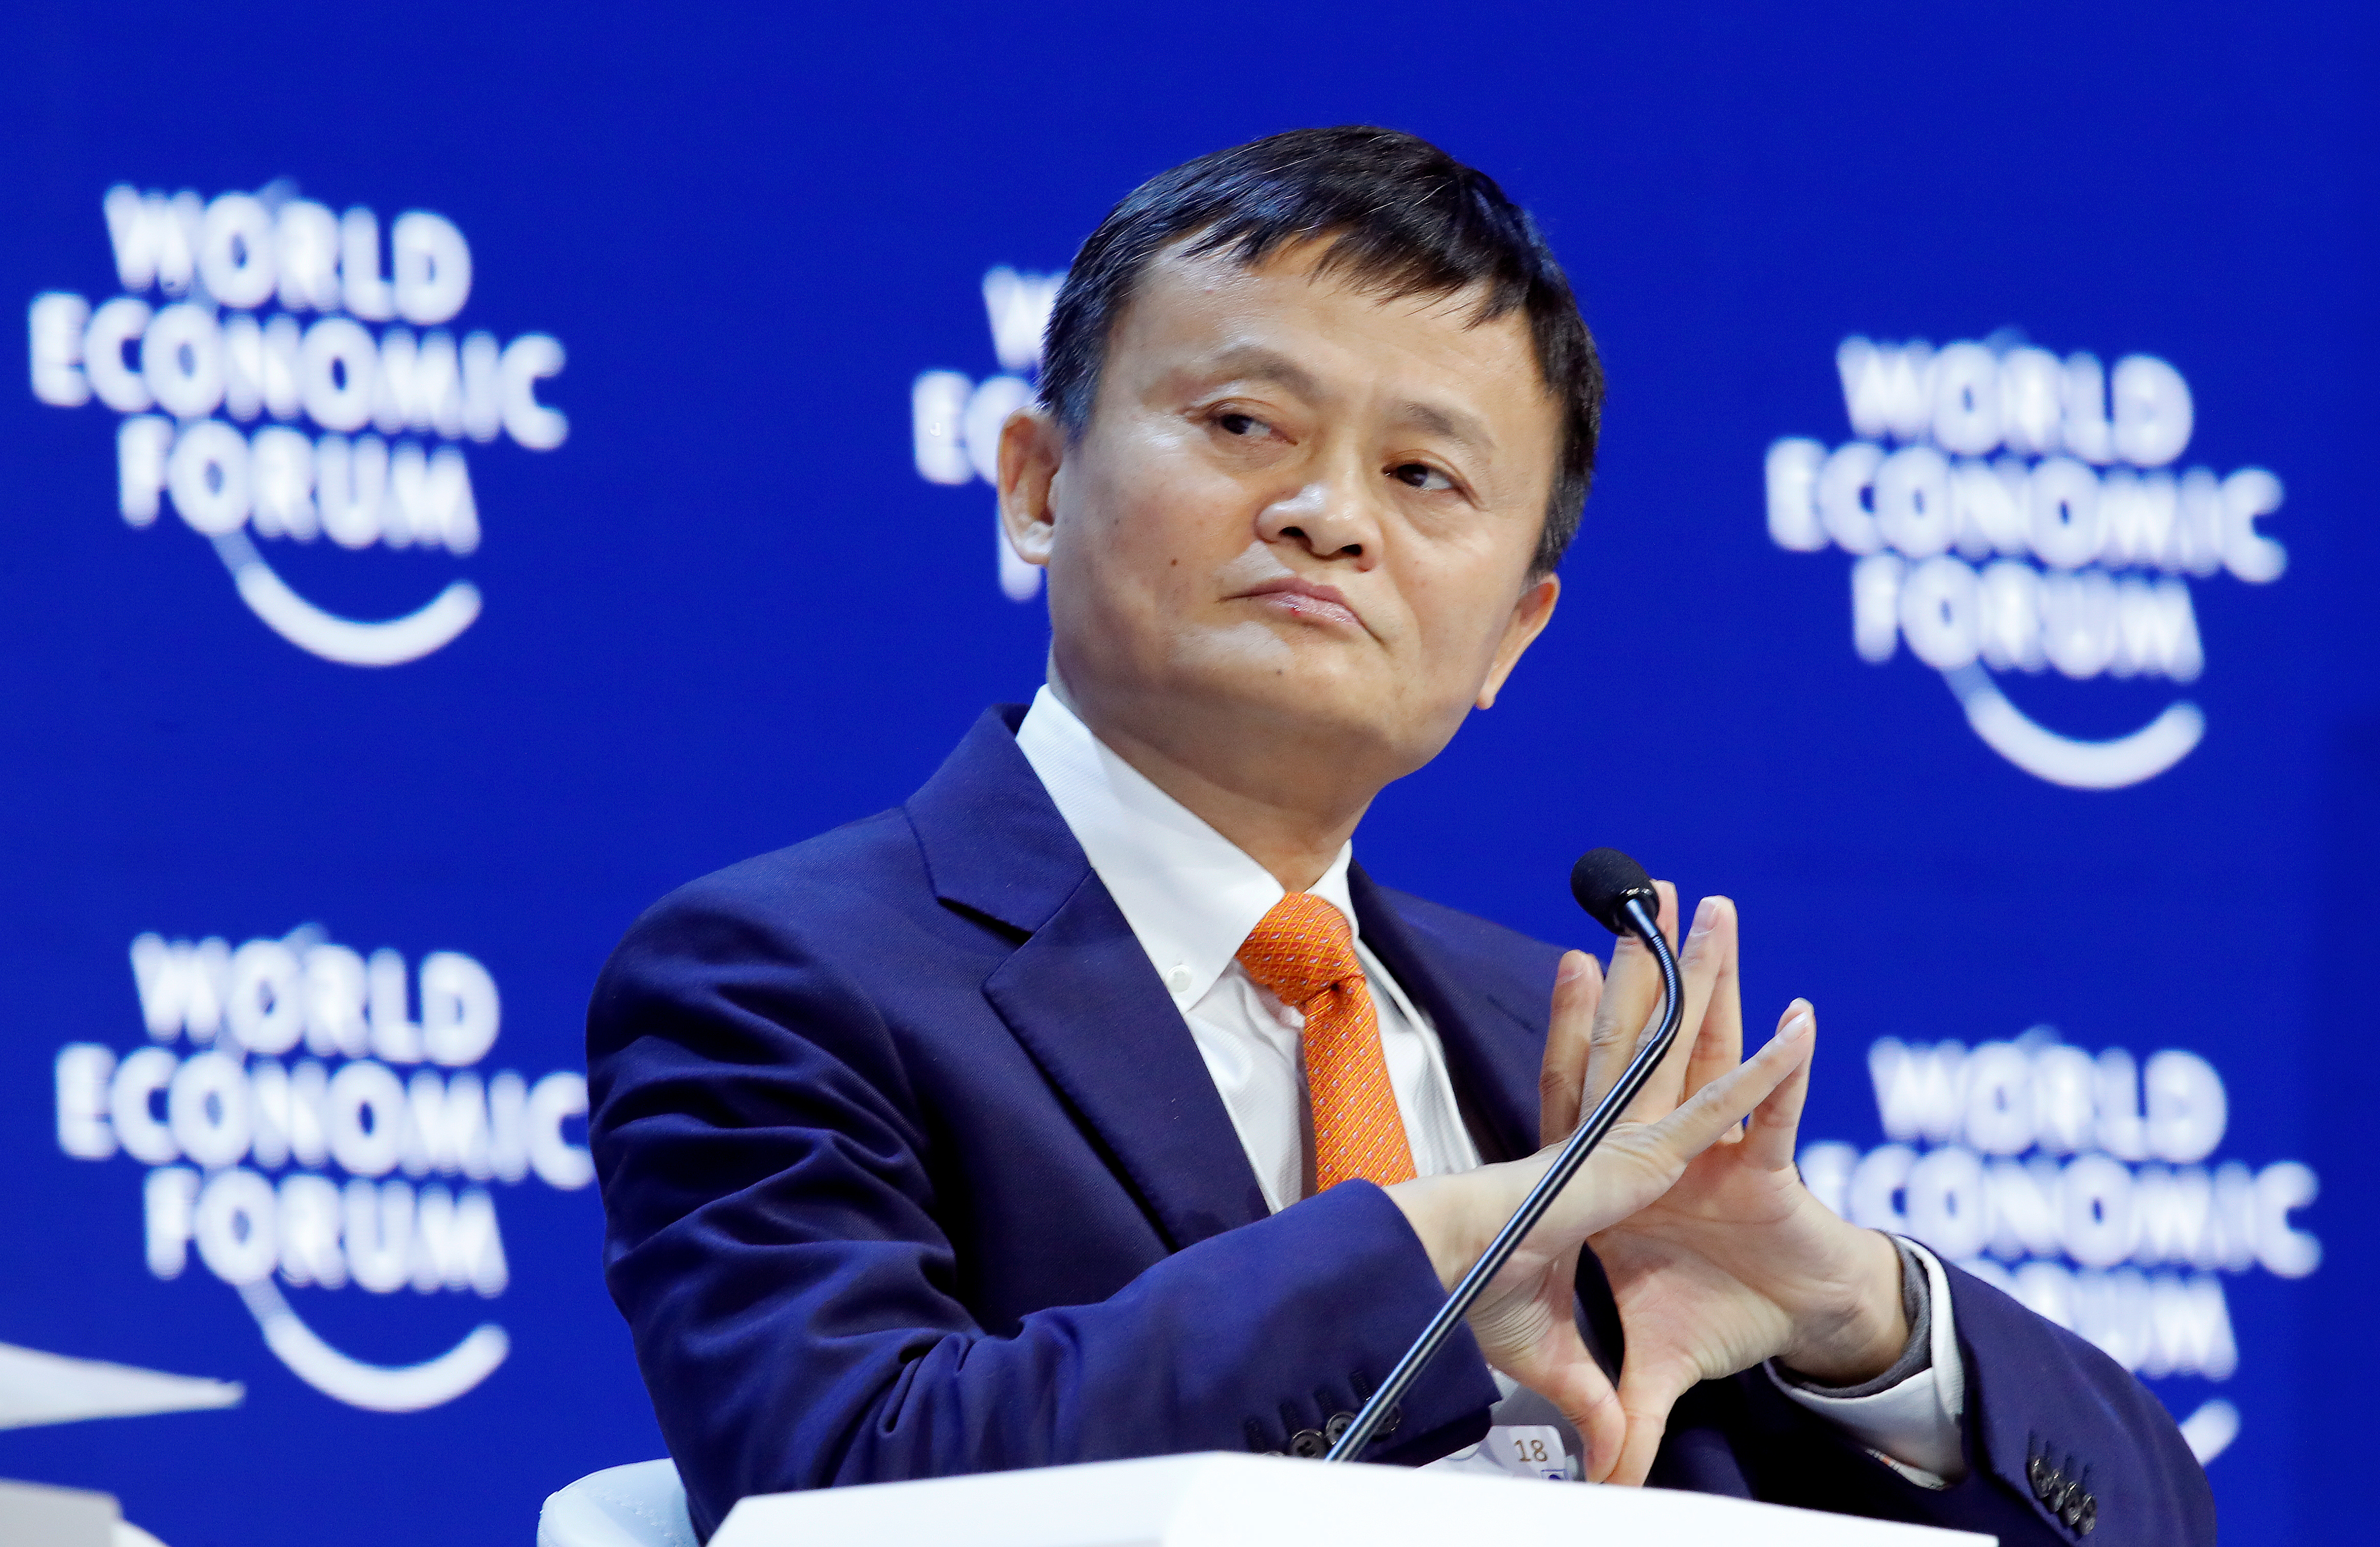 Jack Ma, Executive Chairman of Alibaba Group Holding, gestures during the World Economic Forum (WEF) annual meeting in Davos, Switzerland January 24, 2018.